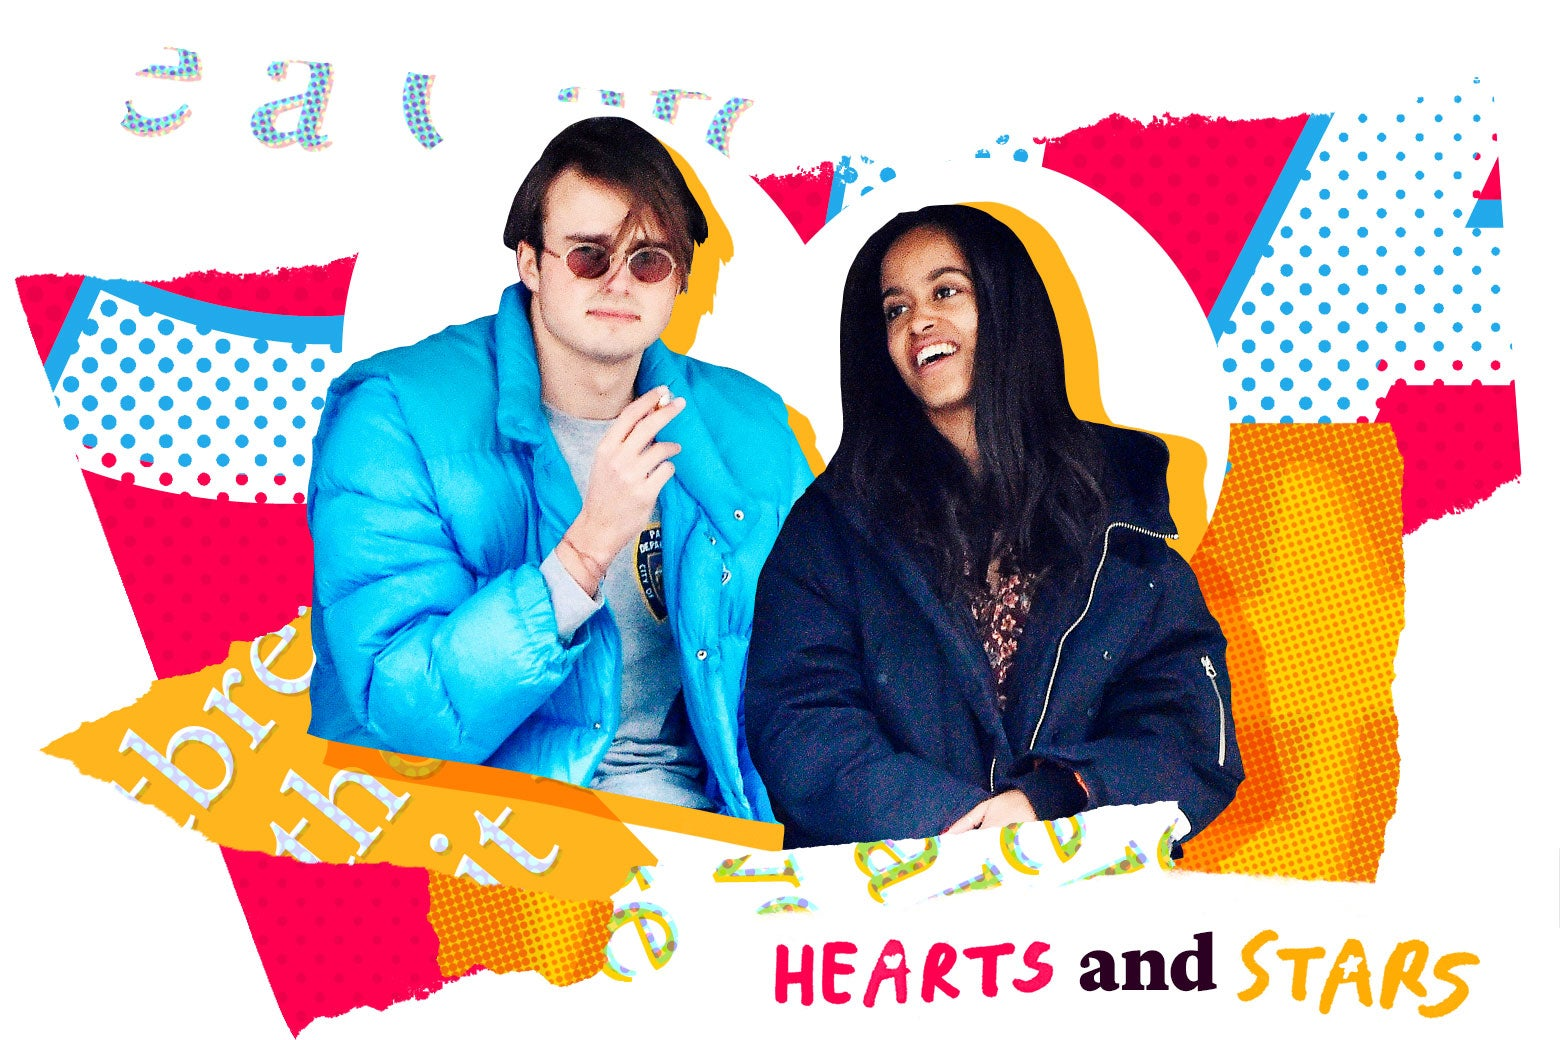 Colorful magazine clipping collage with Rory Farquharson and Malia Obama.